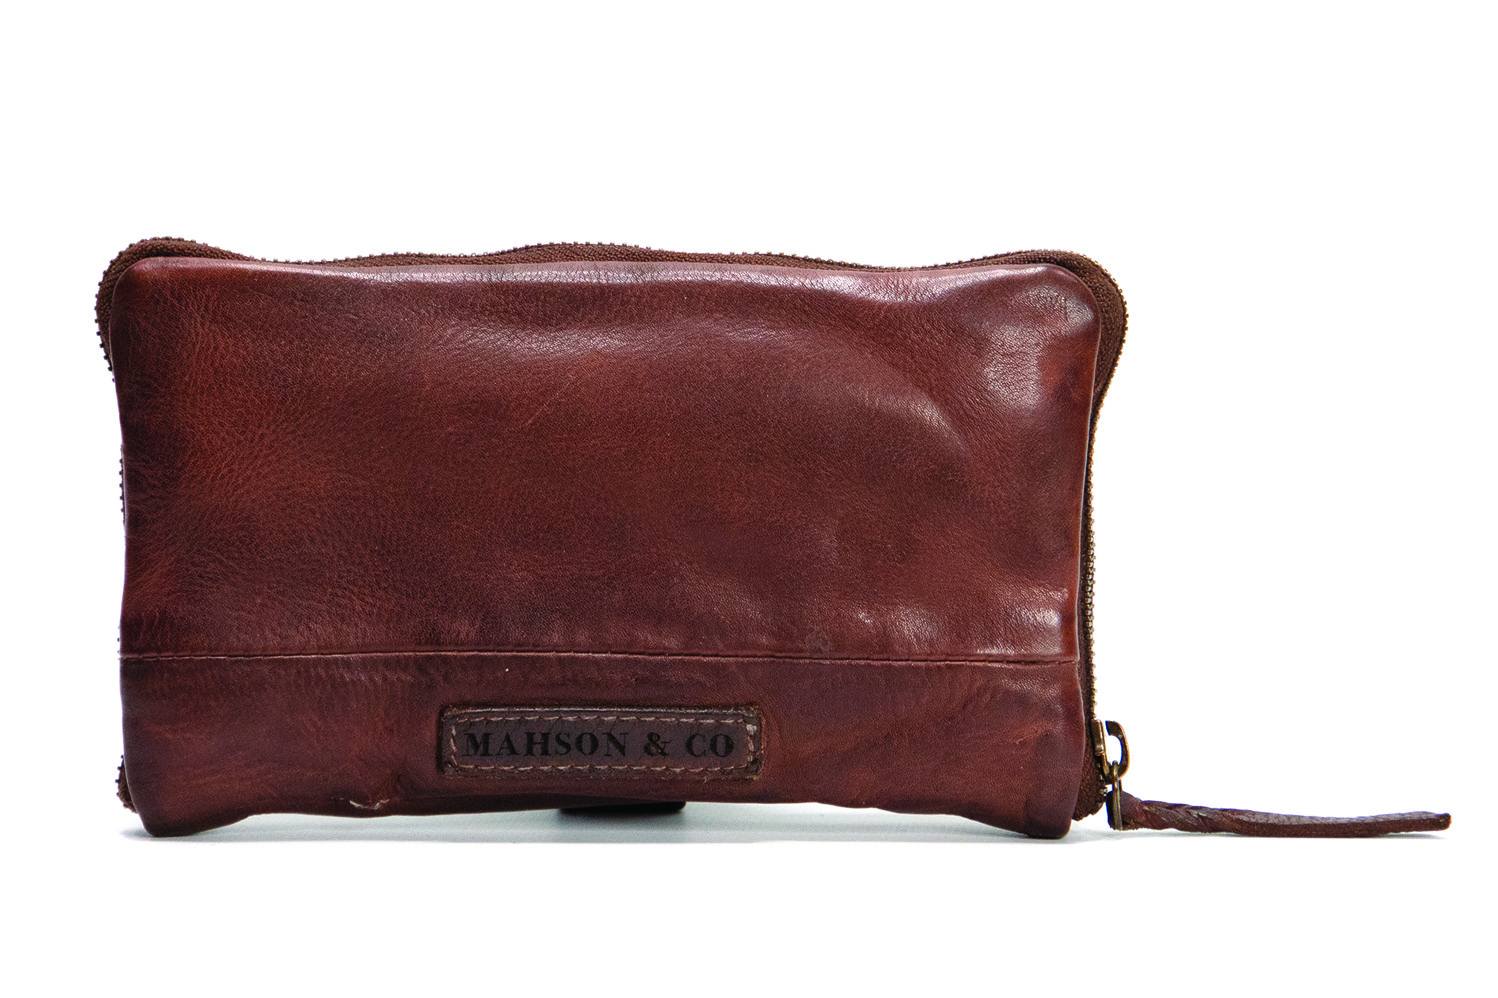 Vintage, retro and boho inspired leather wallet - cognac